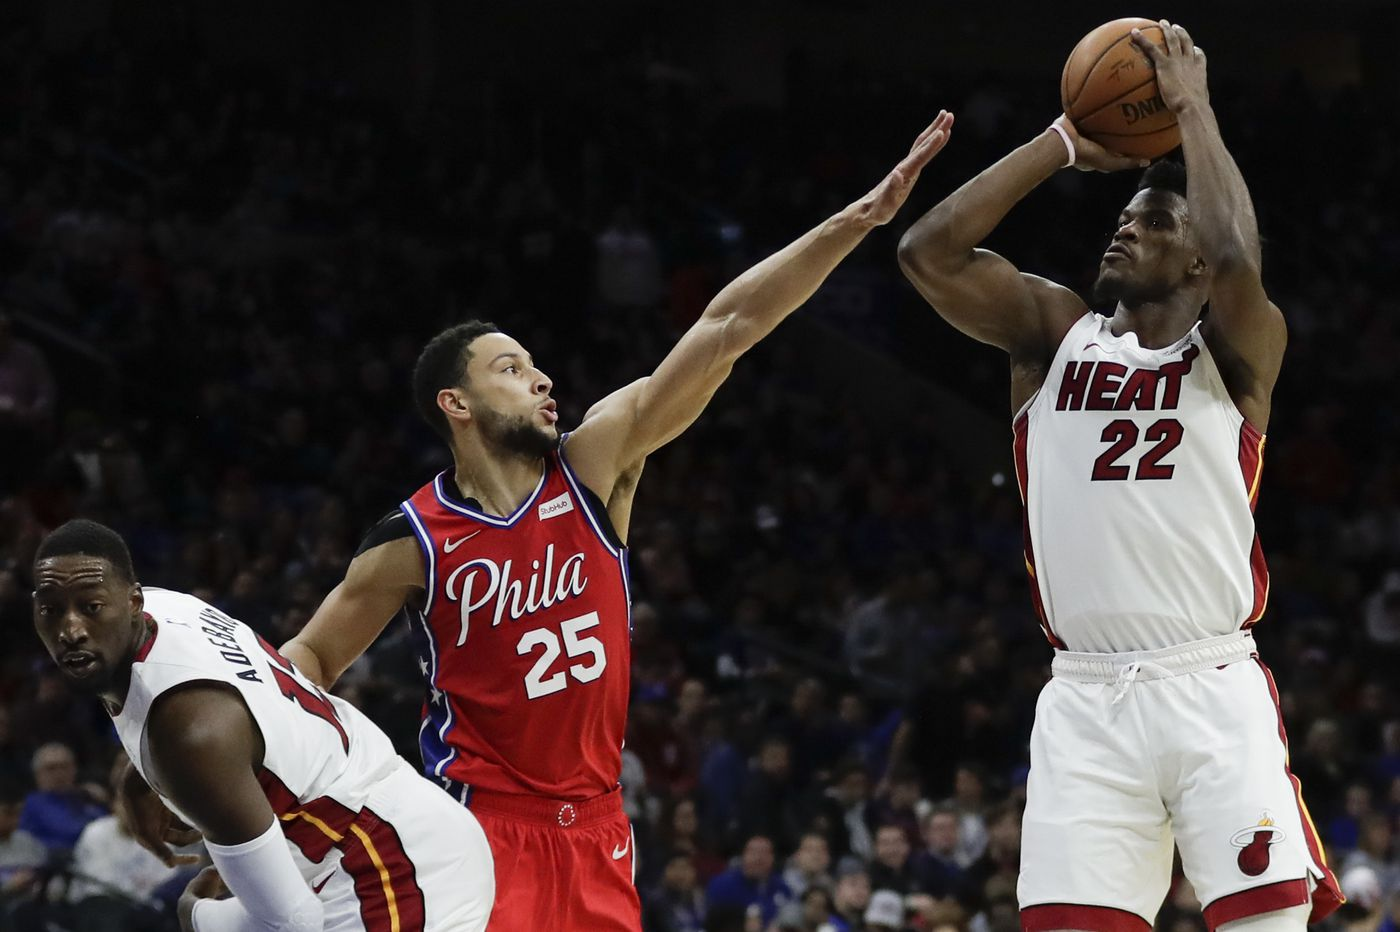 How the Heat match up with the Sixers before the NBA's trade deadline